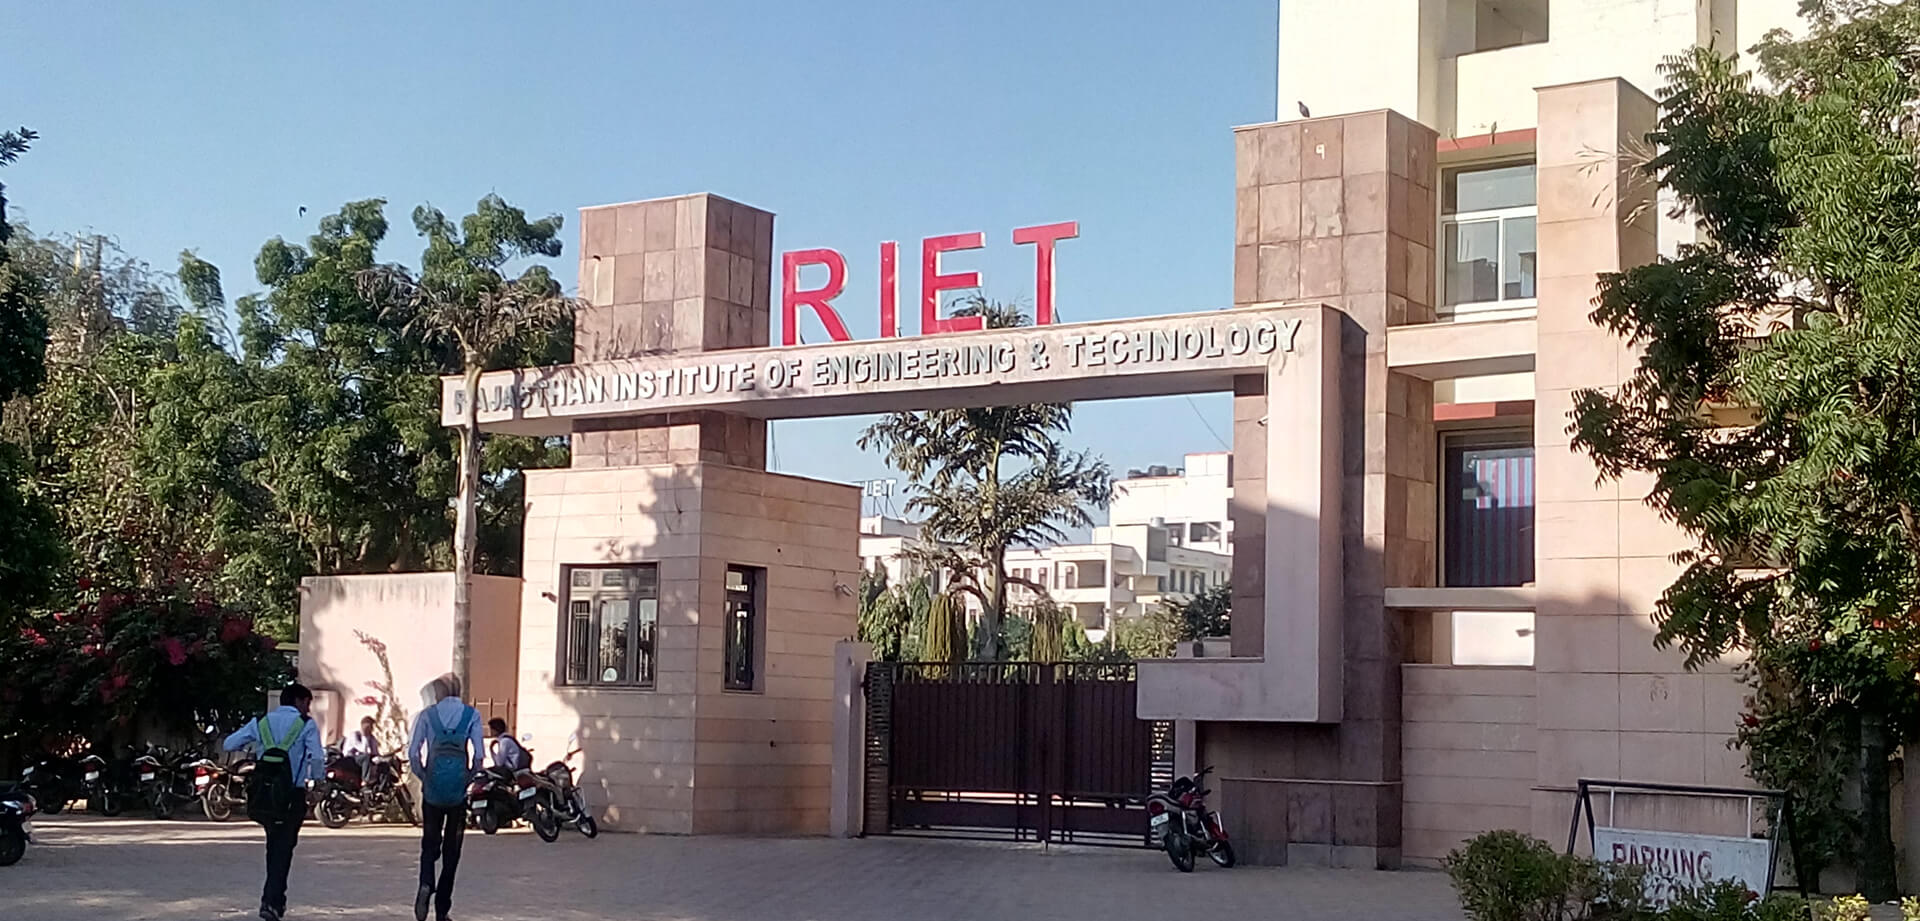 Rajasthan Institute of Engineering & Technology (RIET)